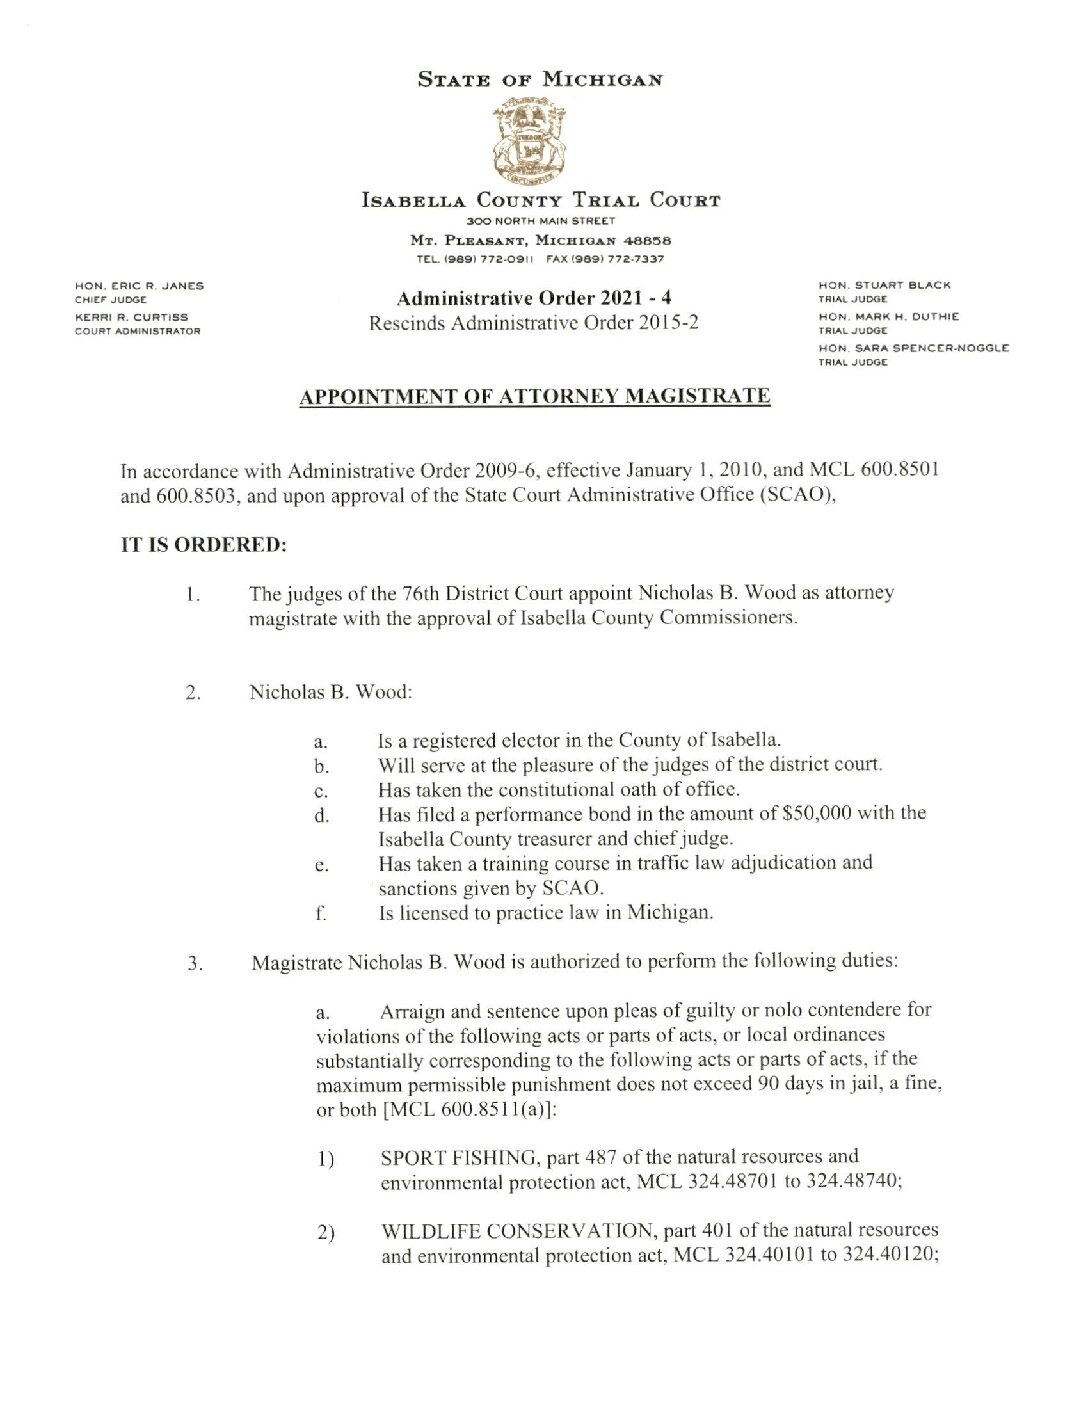 preview image of first page LAO2021-4-Appointment of Attorney Magistrate Nicholas B. Wood